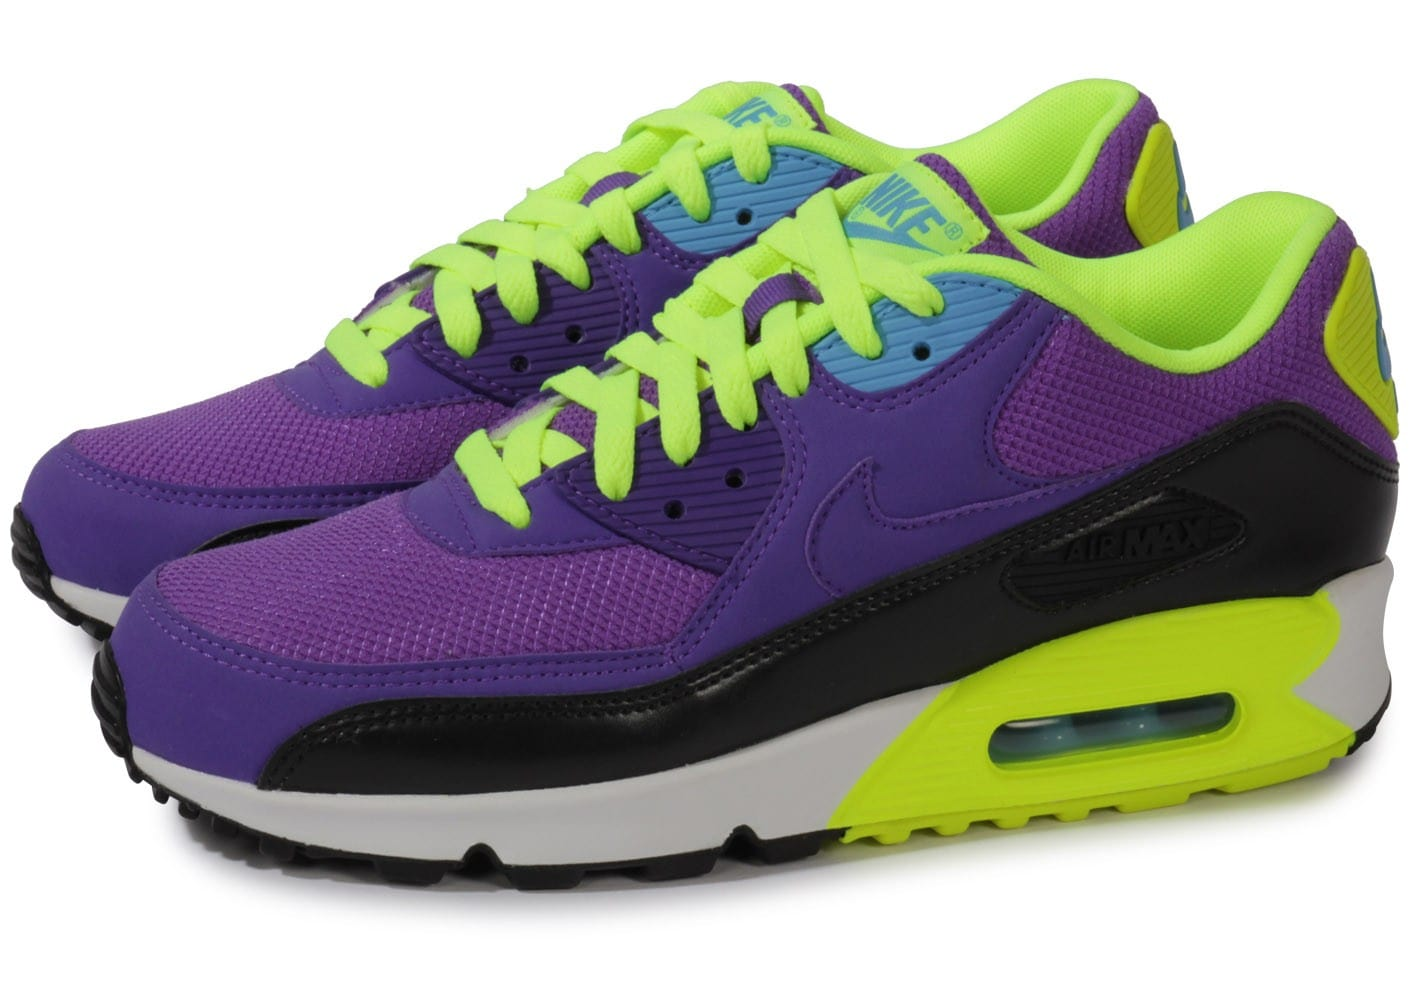 Nike Air Max 90 Hyper Homme Punch Violet Chaussures Baskets Homme Hyper 7260e7